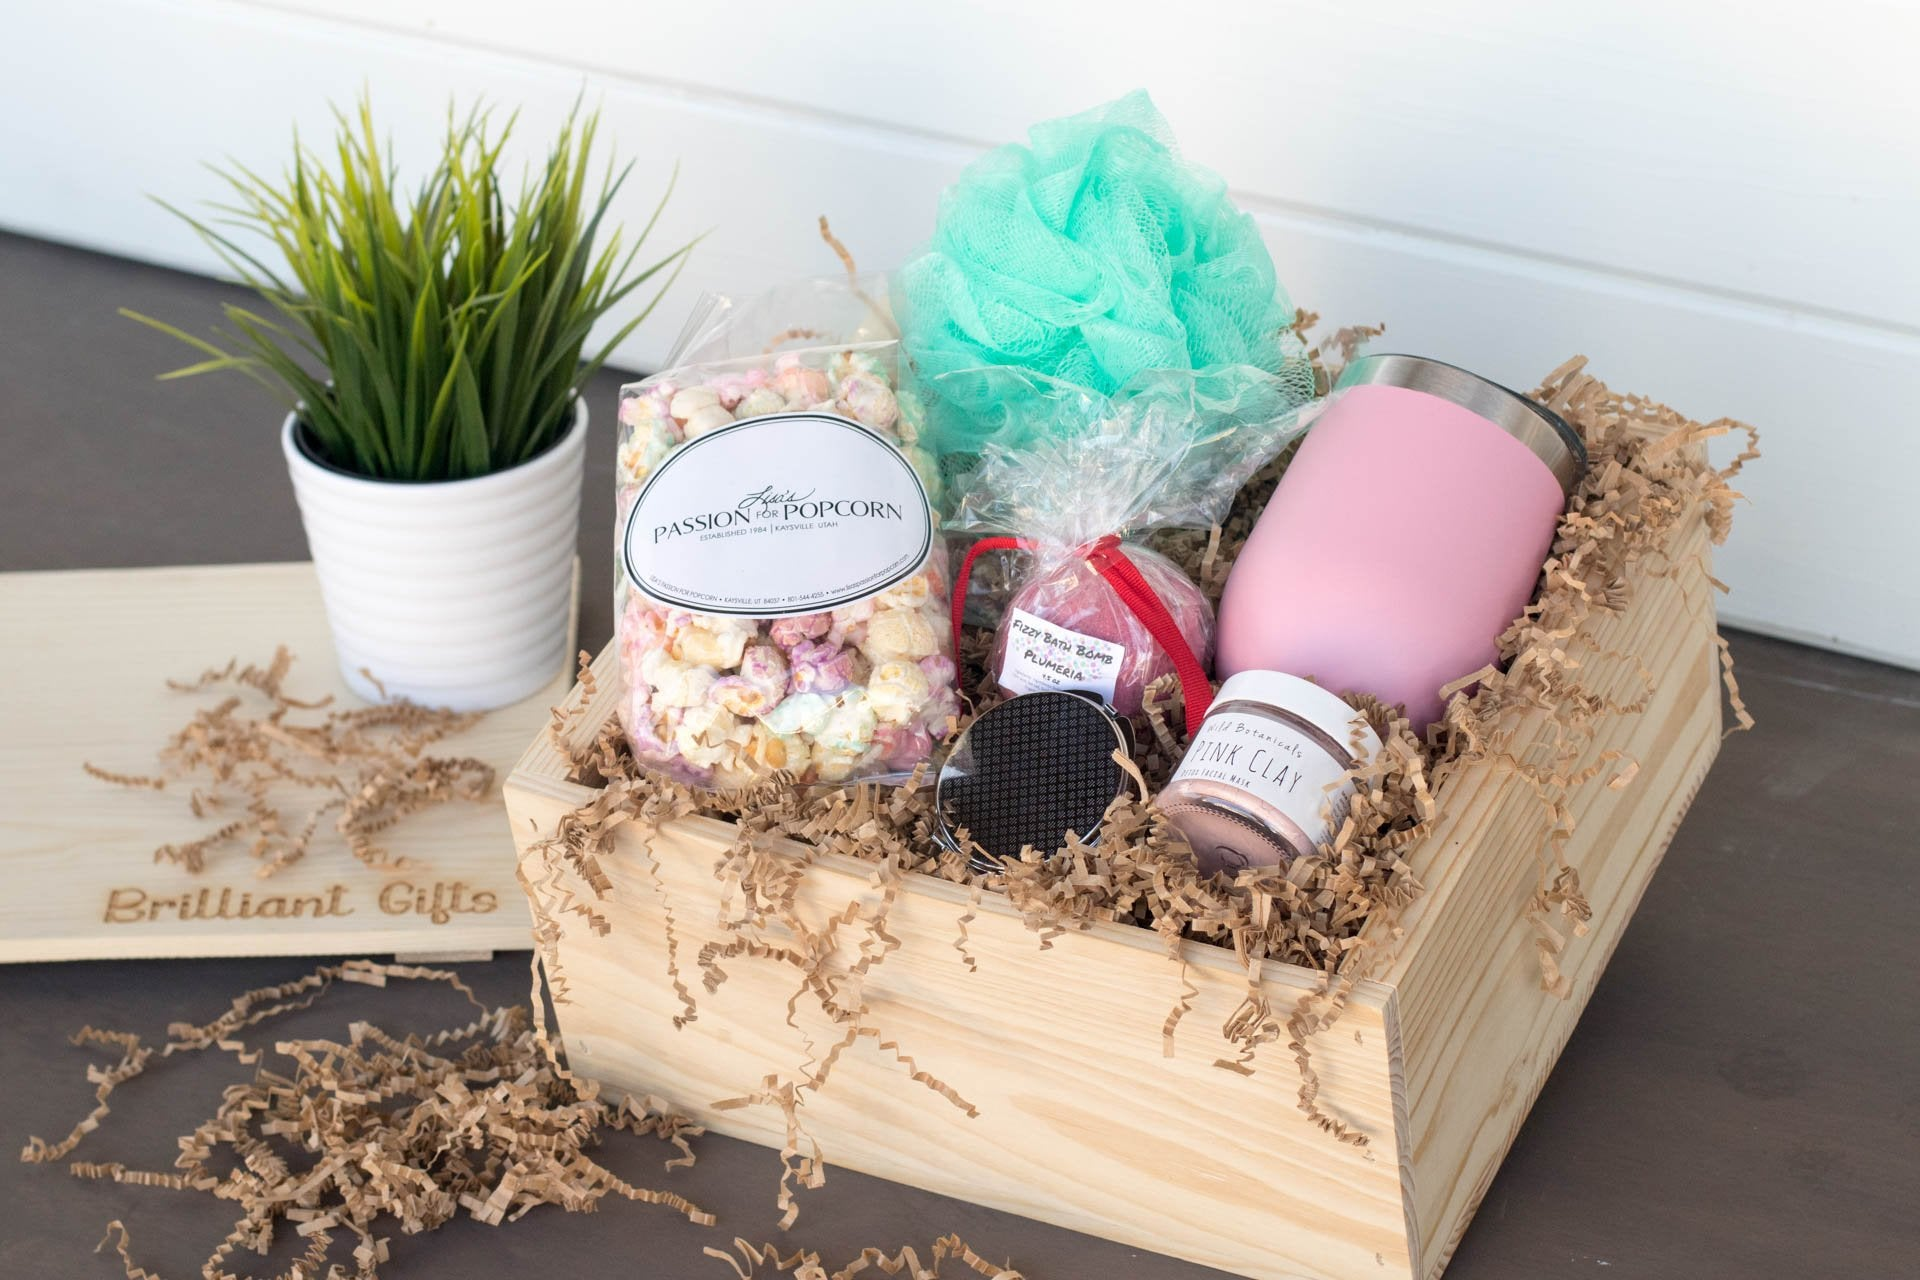 25 Exciting Birthday Gift Boxes For Women Birthday Gift Box For Her Brilliant Gifts